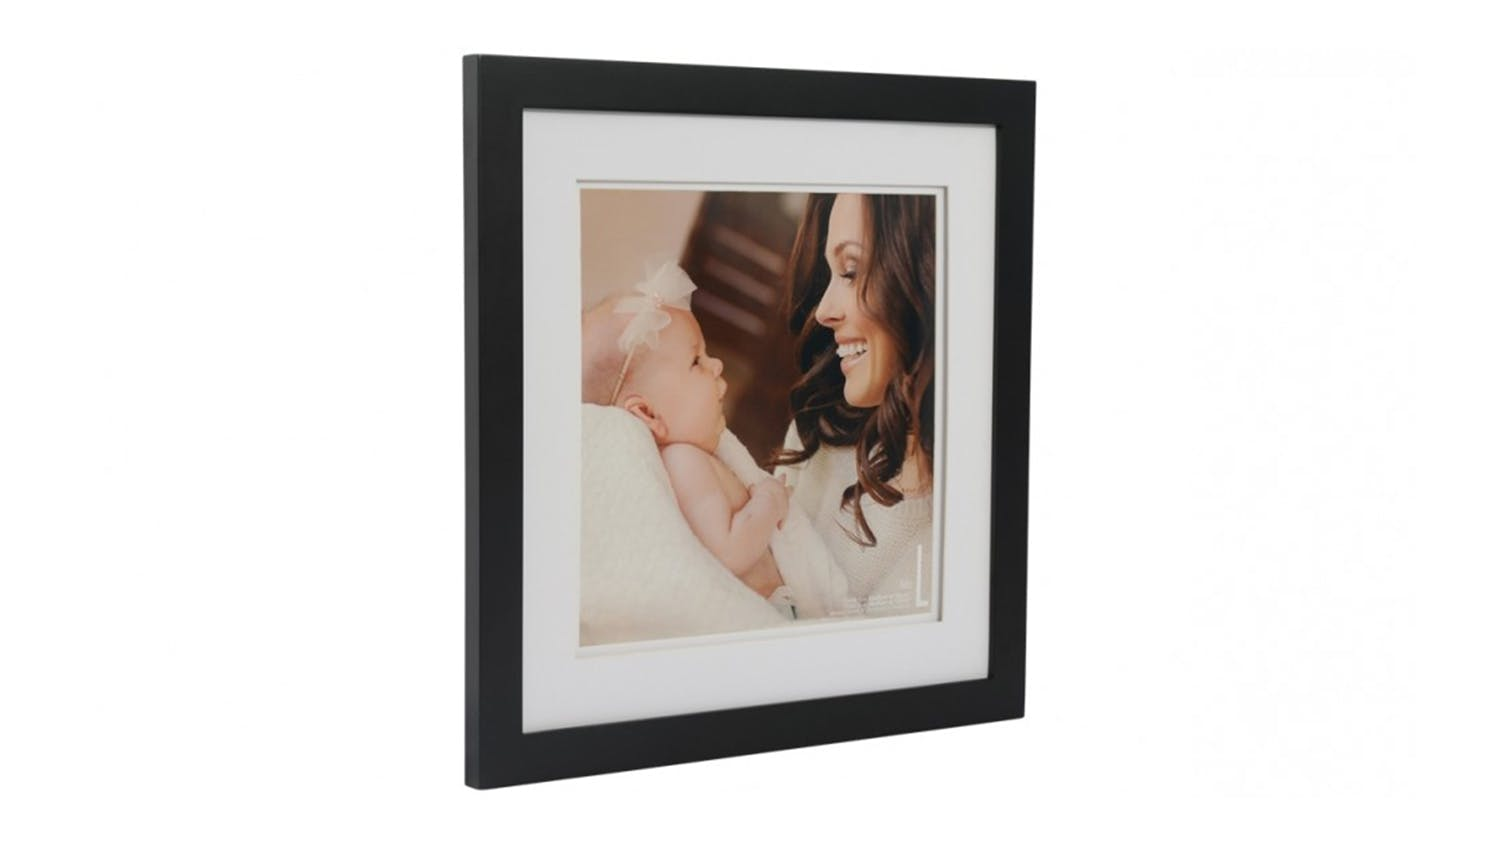 UR1 Life 16x16 Photo Frame with 12x12 Opening - Black